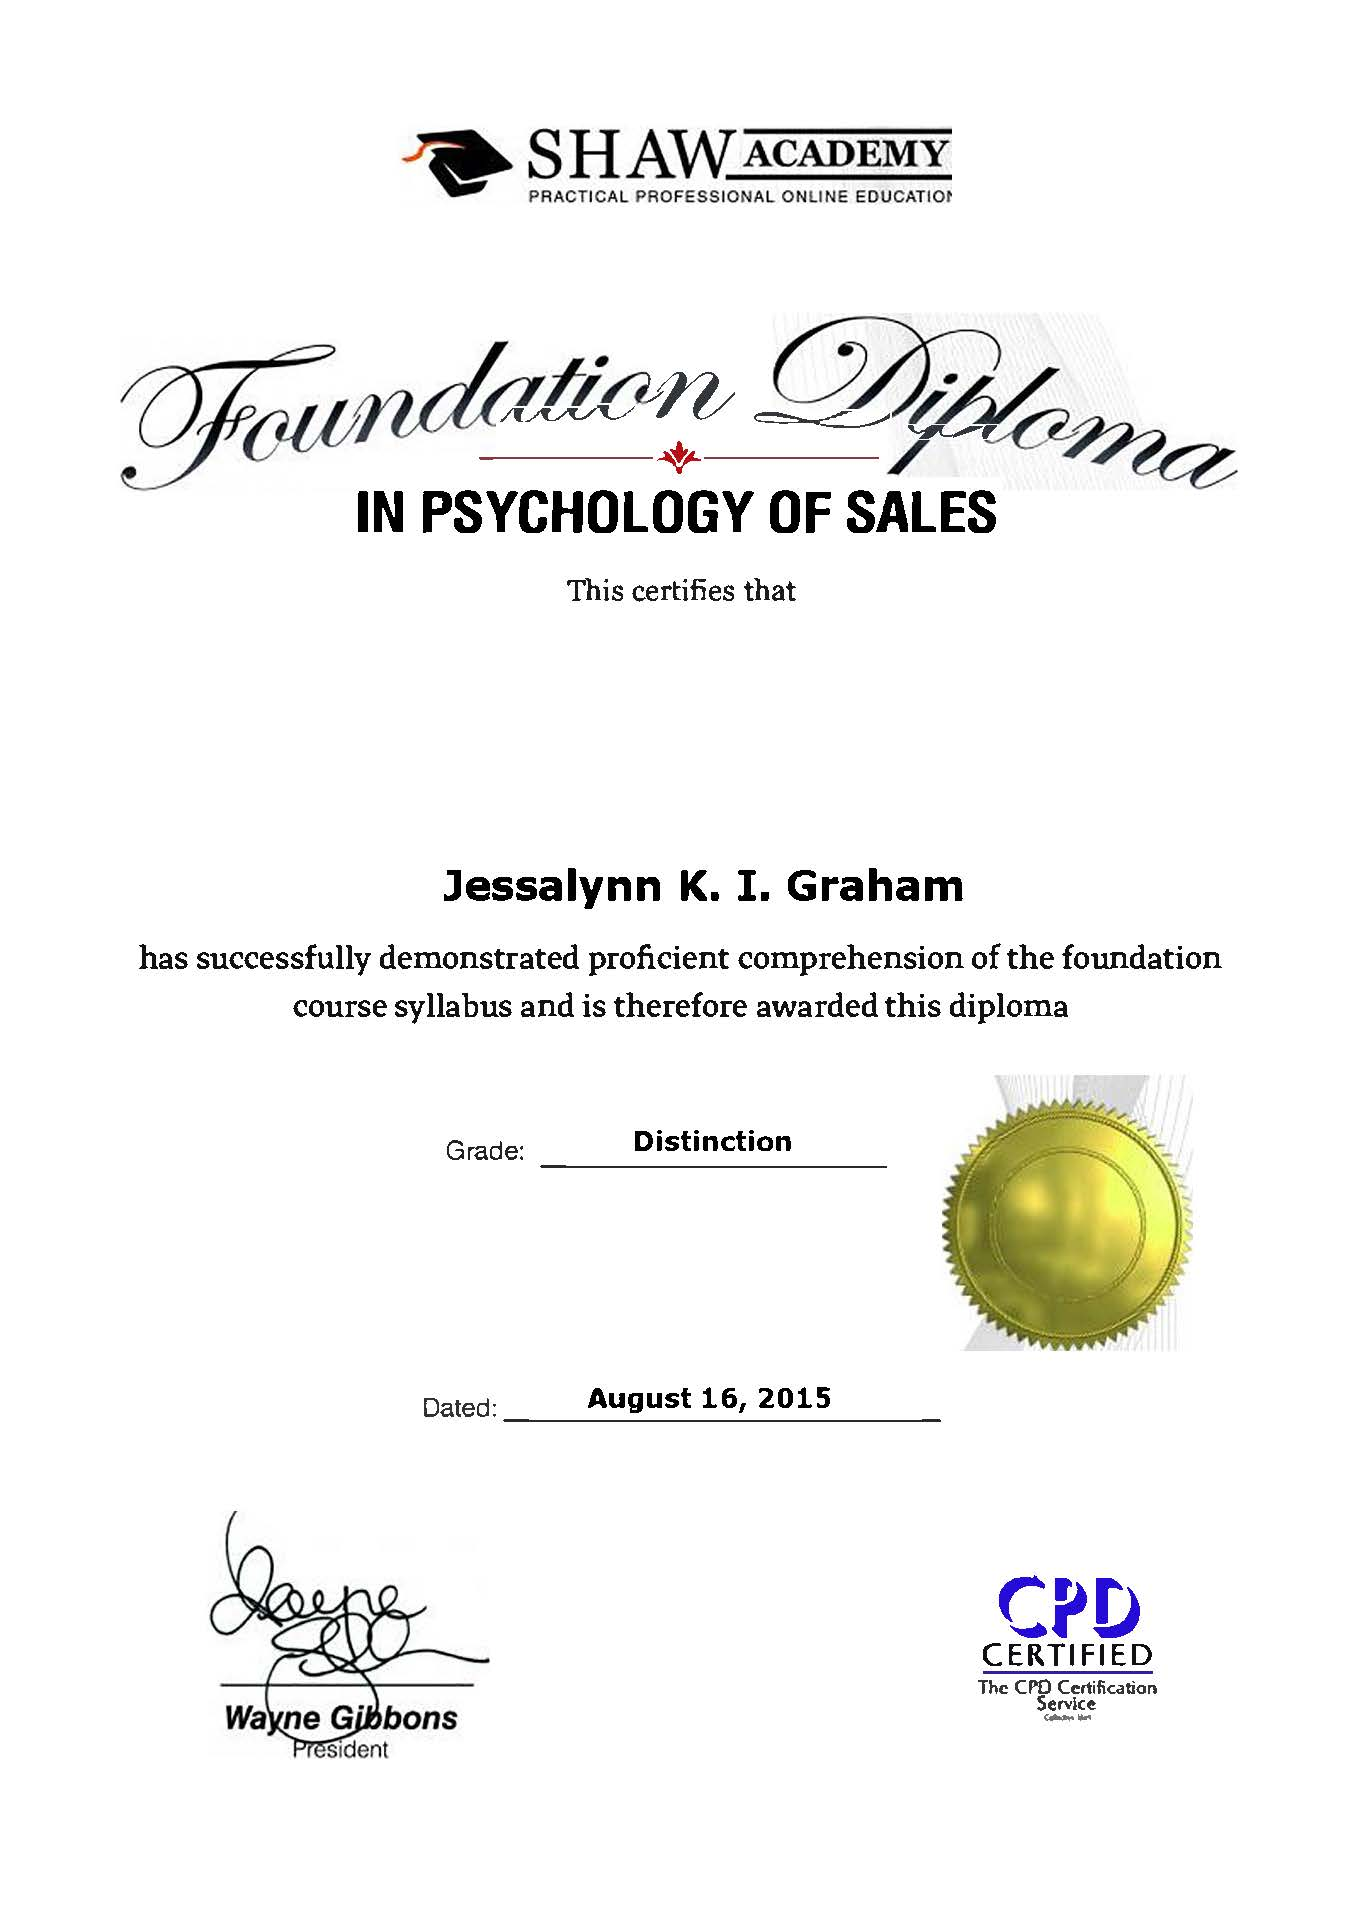 Psychology of Sales Diploma